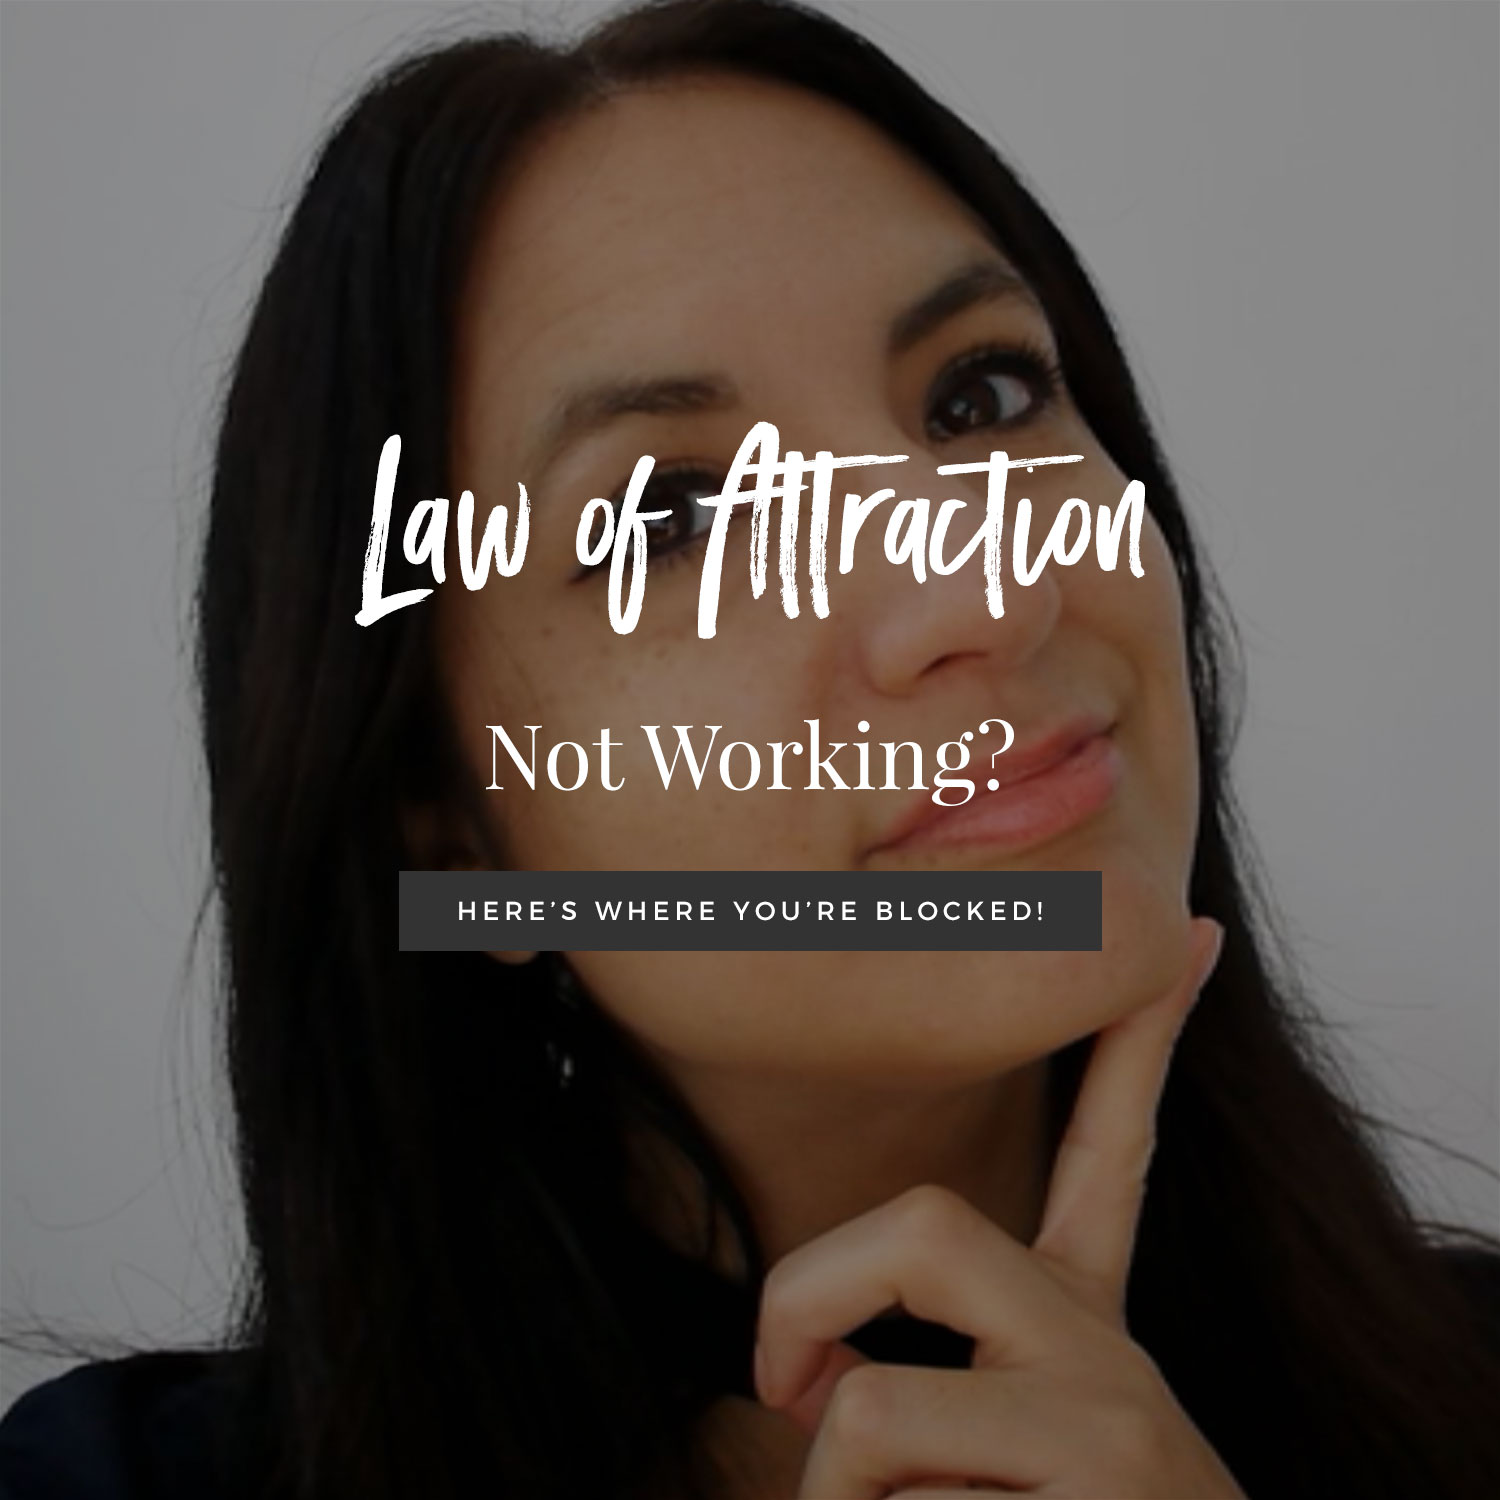 Law of Attraction Not Working? Here's Where You're Blocked